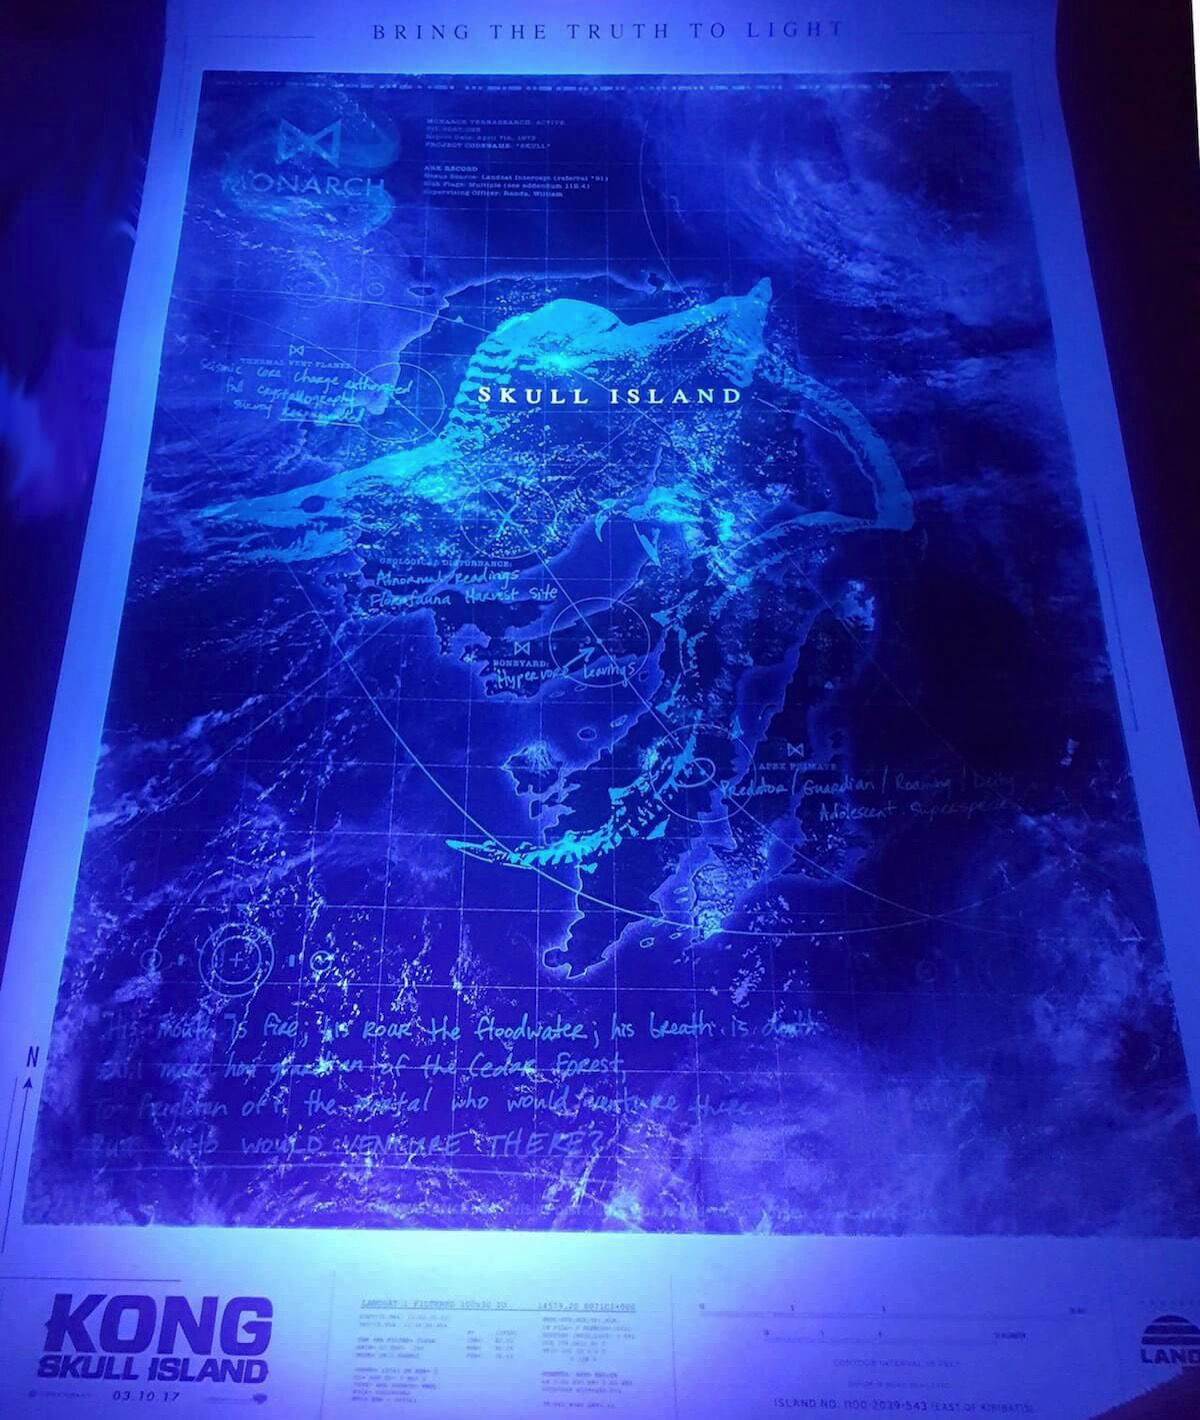 Kong skull island poster viral black light